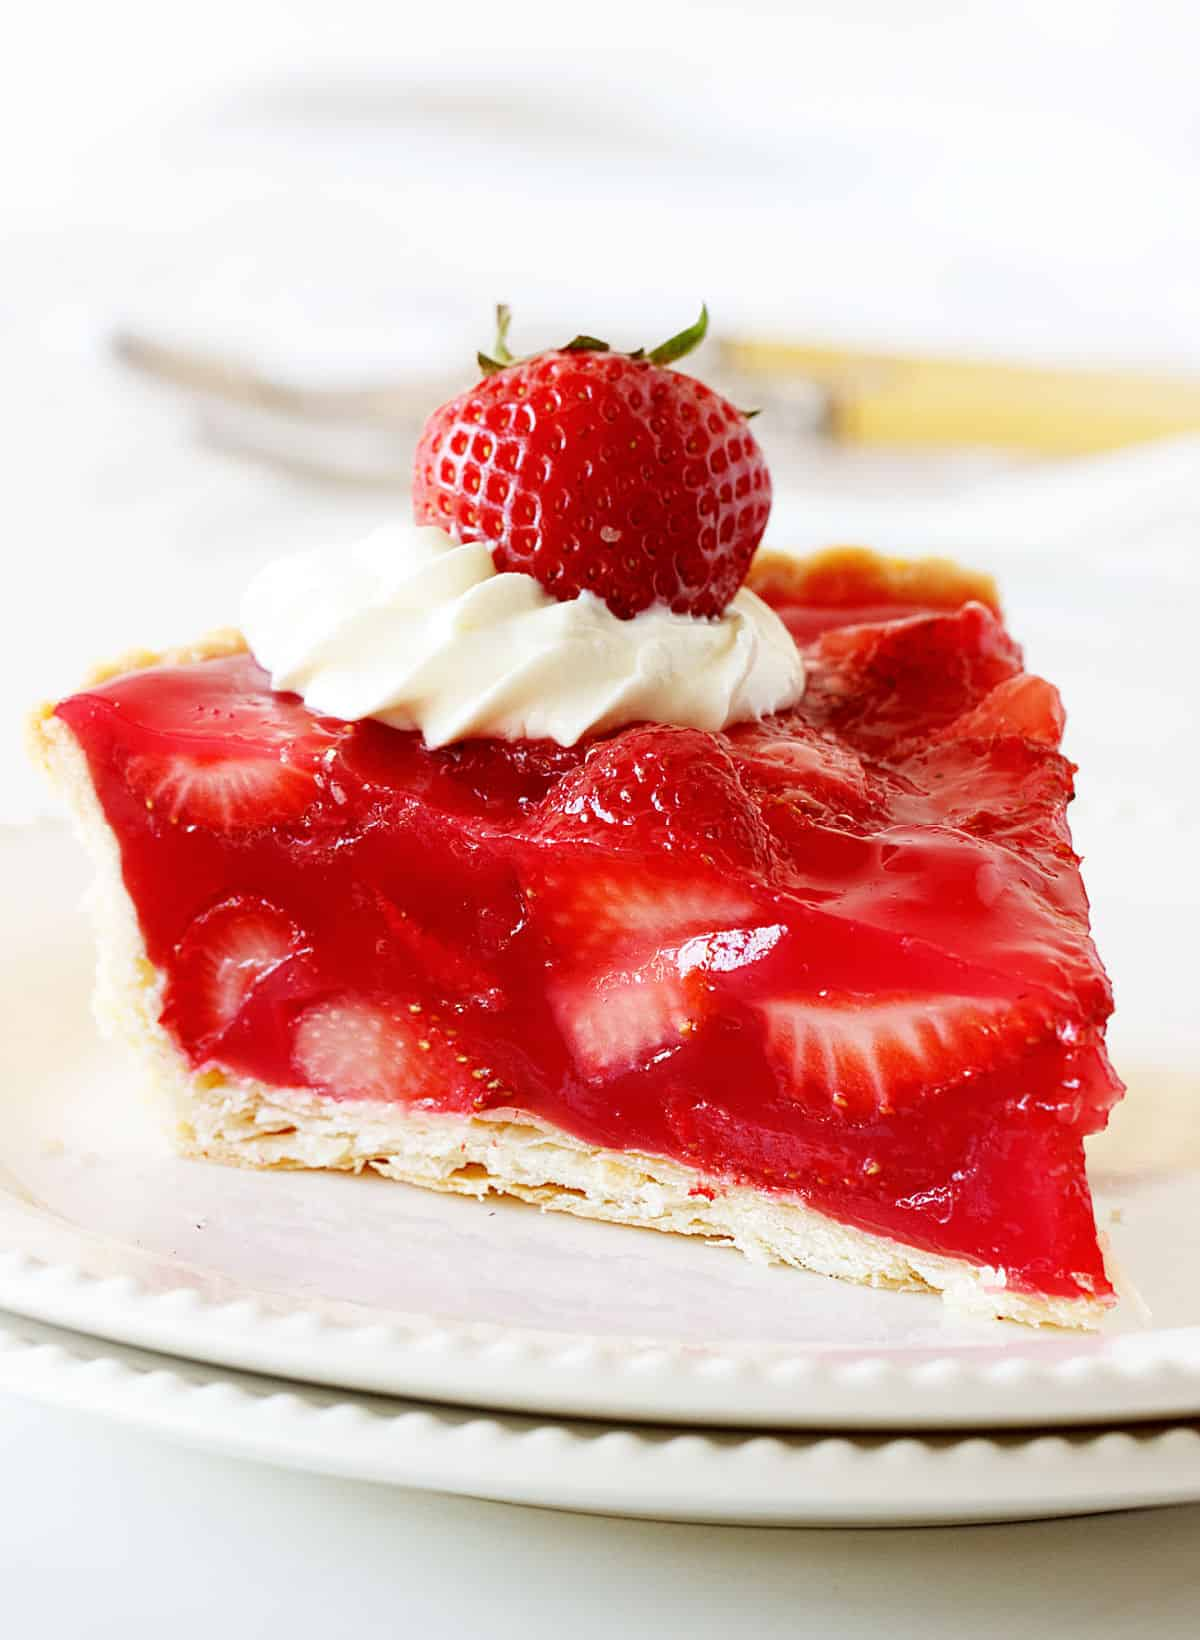 Single slice of strawberry jello pie on white plate with white background